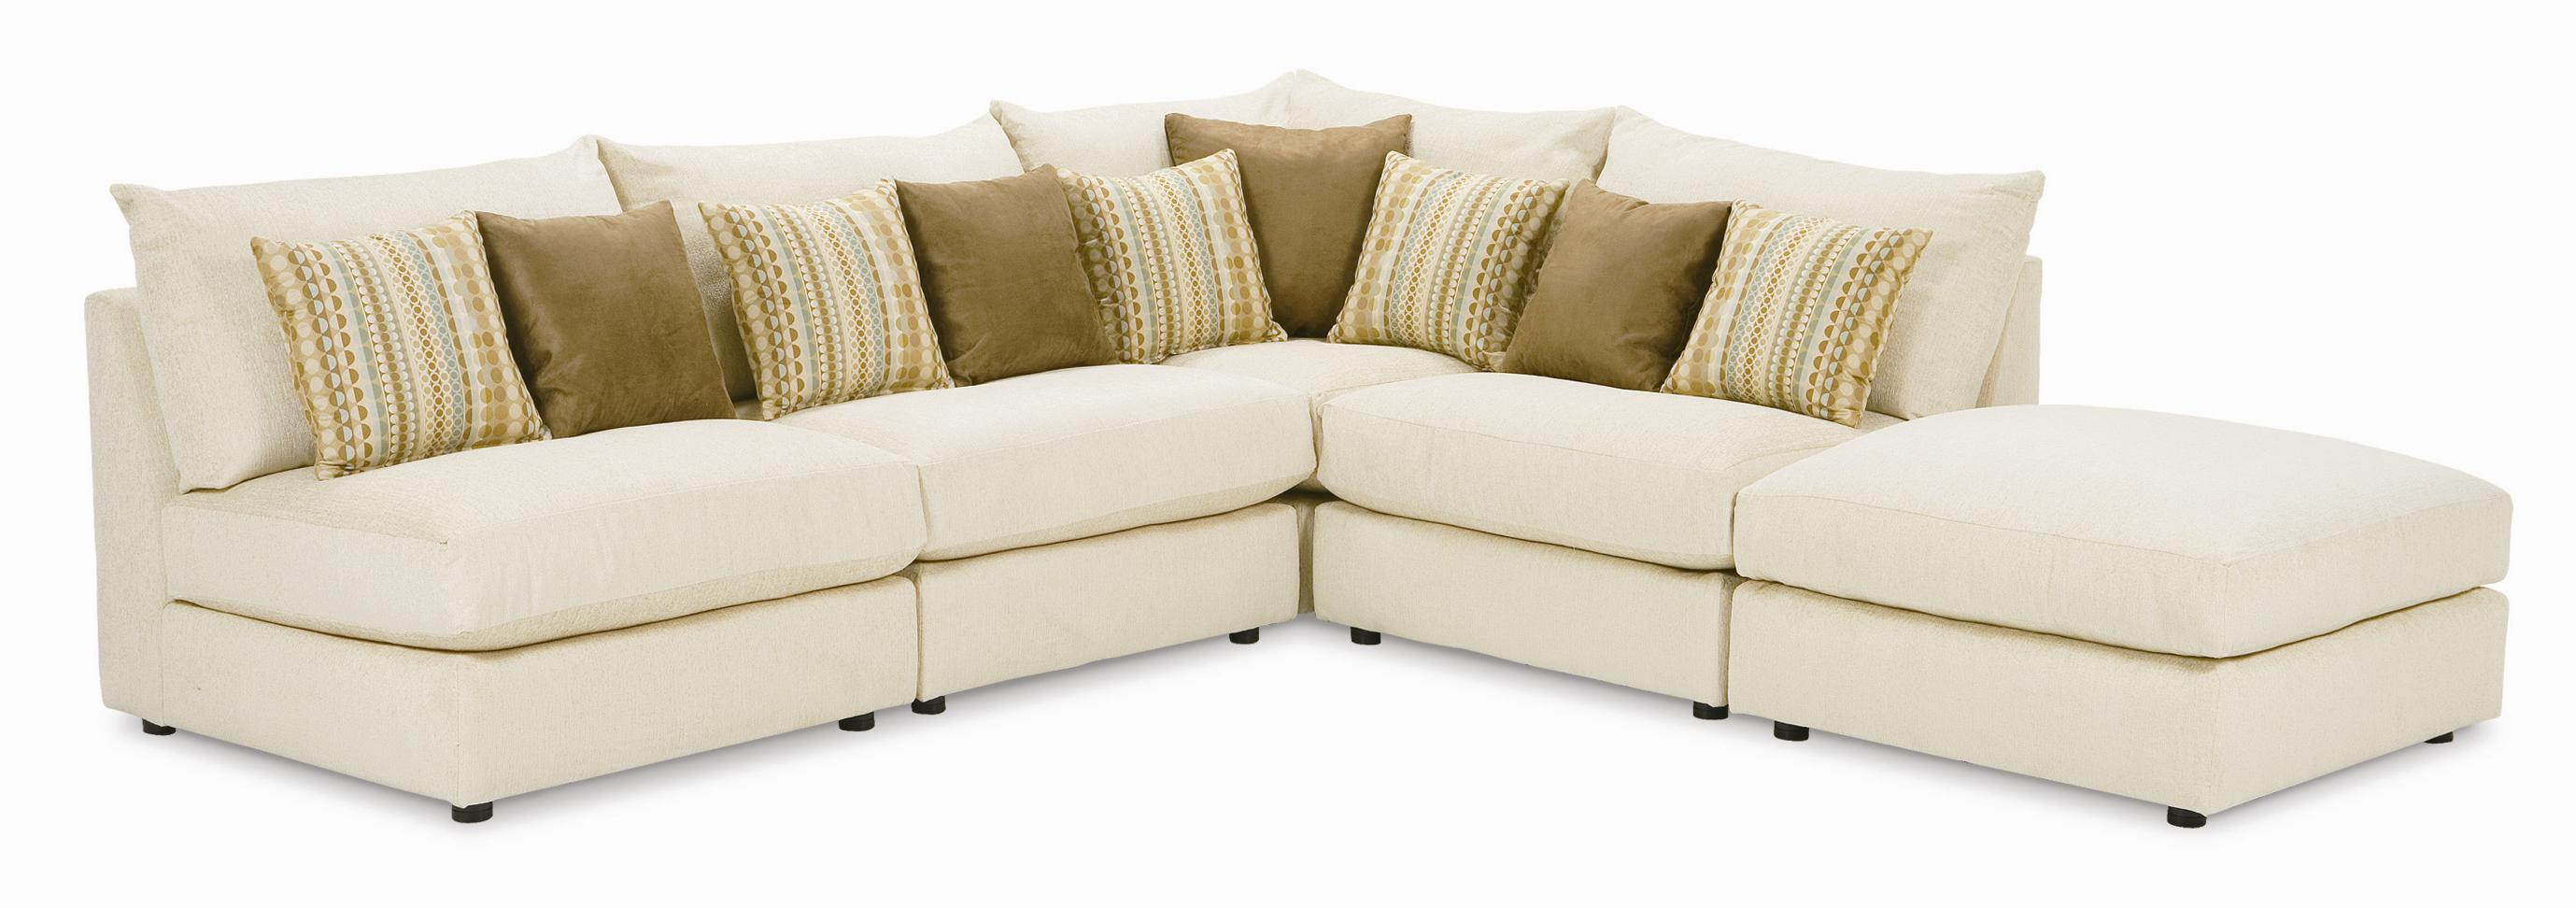 Armless Sectional Sofa Carson Armless Taupe Sectional Sofa